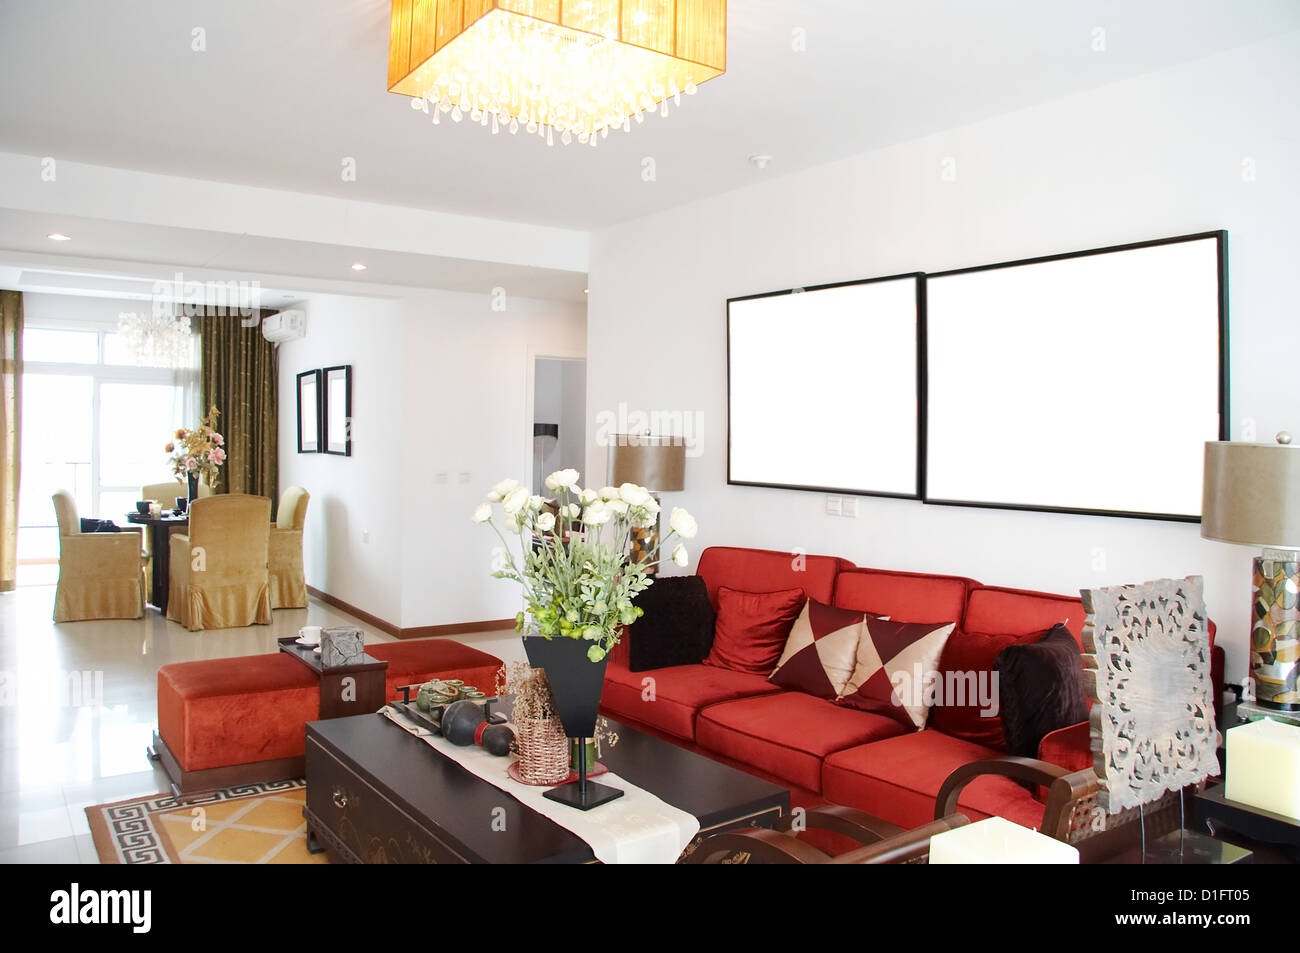 Chinese Traditional Living Room Stock Photos & Chinese Traditional ...